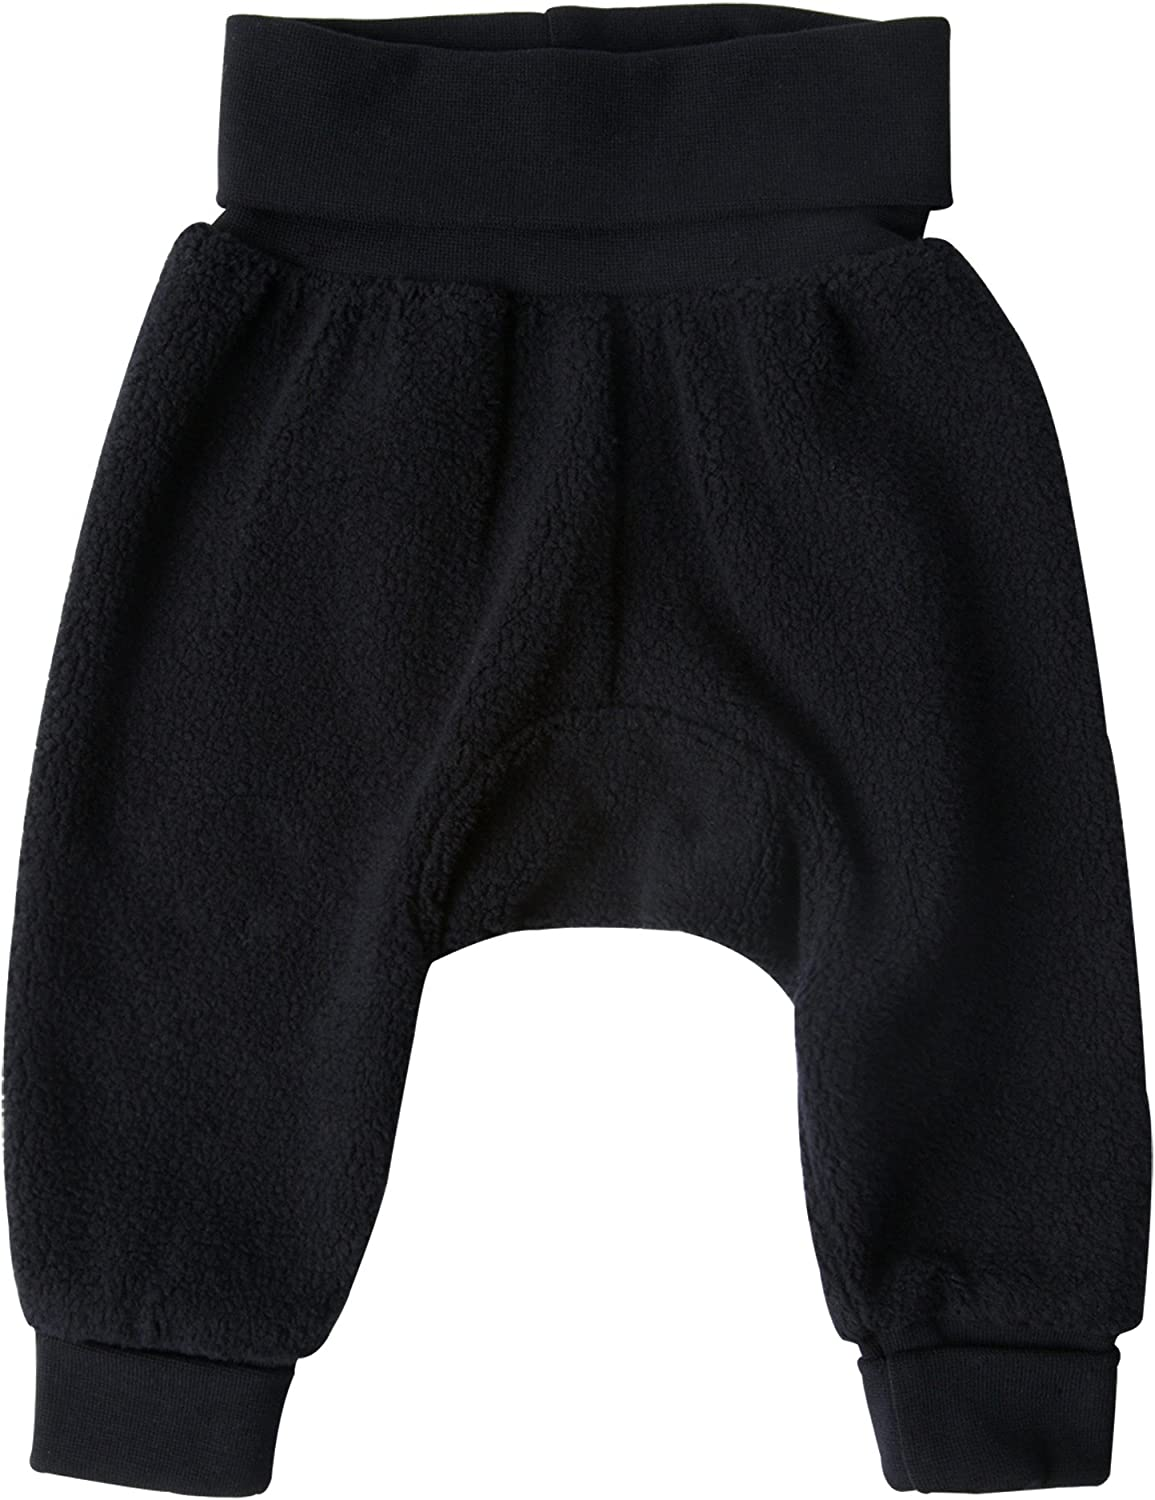 Zutano Cozie Fleece Baby Cuff Pants Fits Cloth Diapers For Infants and Babies Unisex